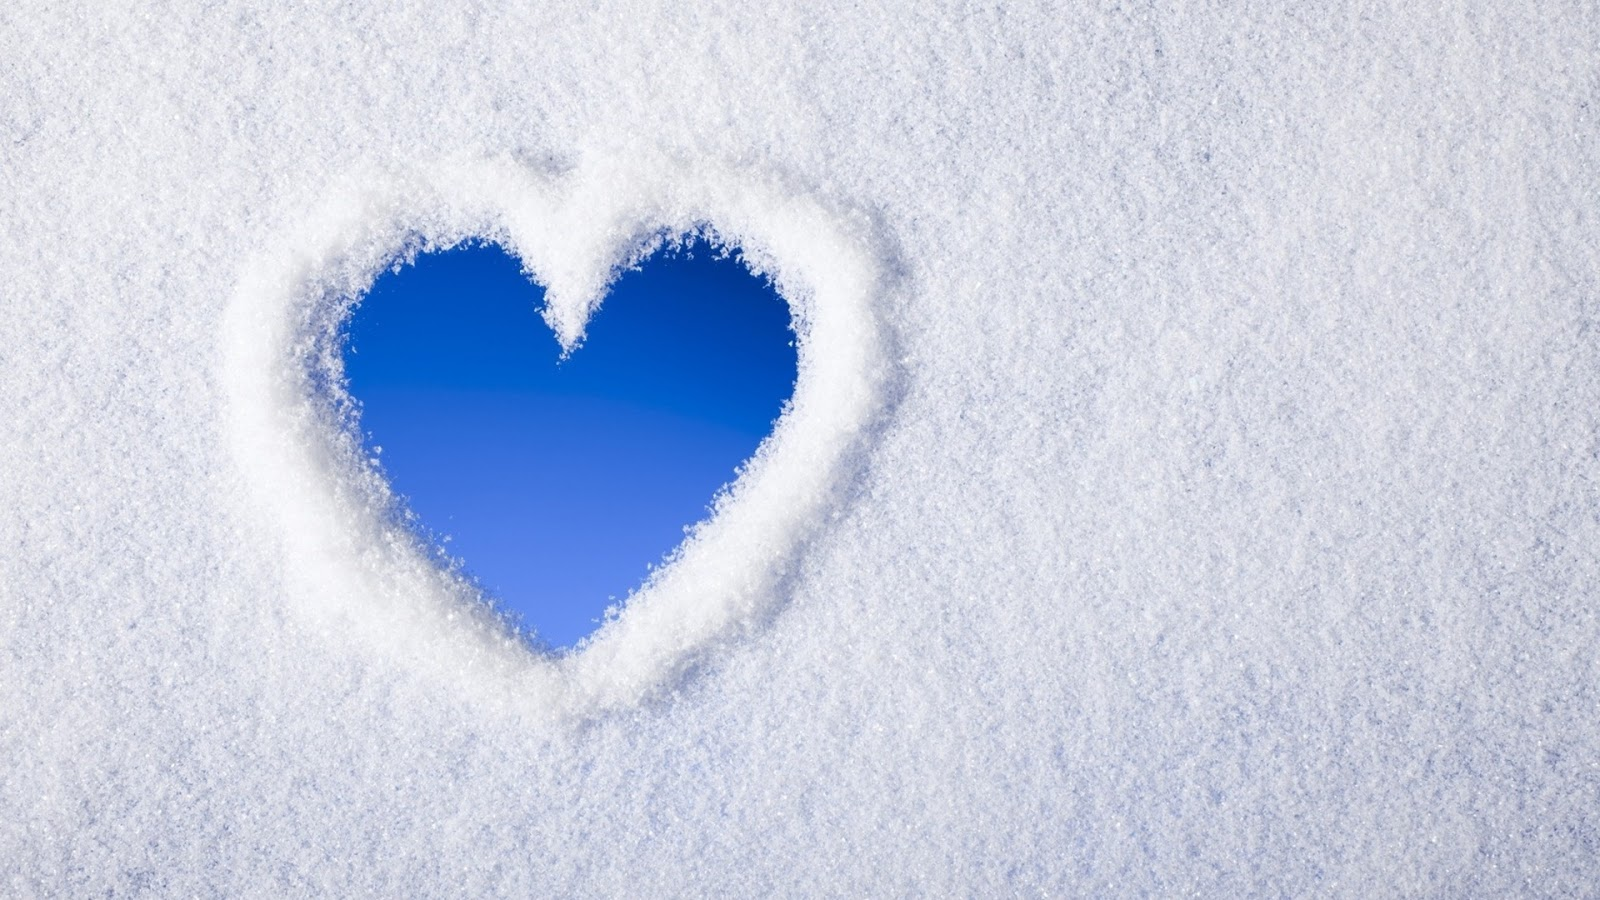 Snow Love Heart 1920x1080 Wallpaper